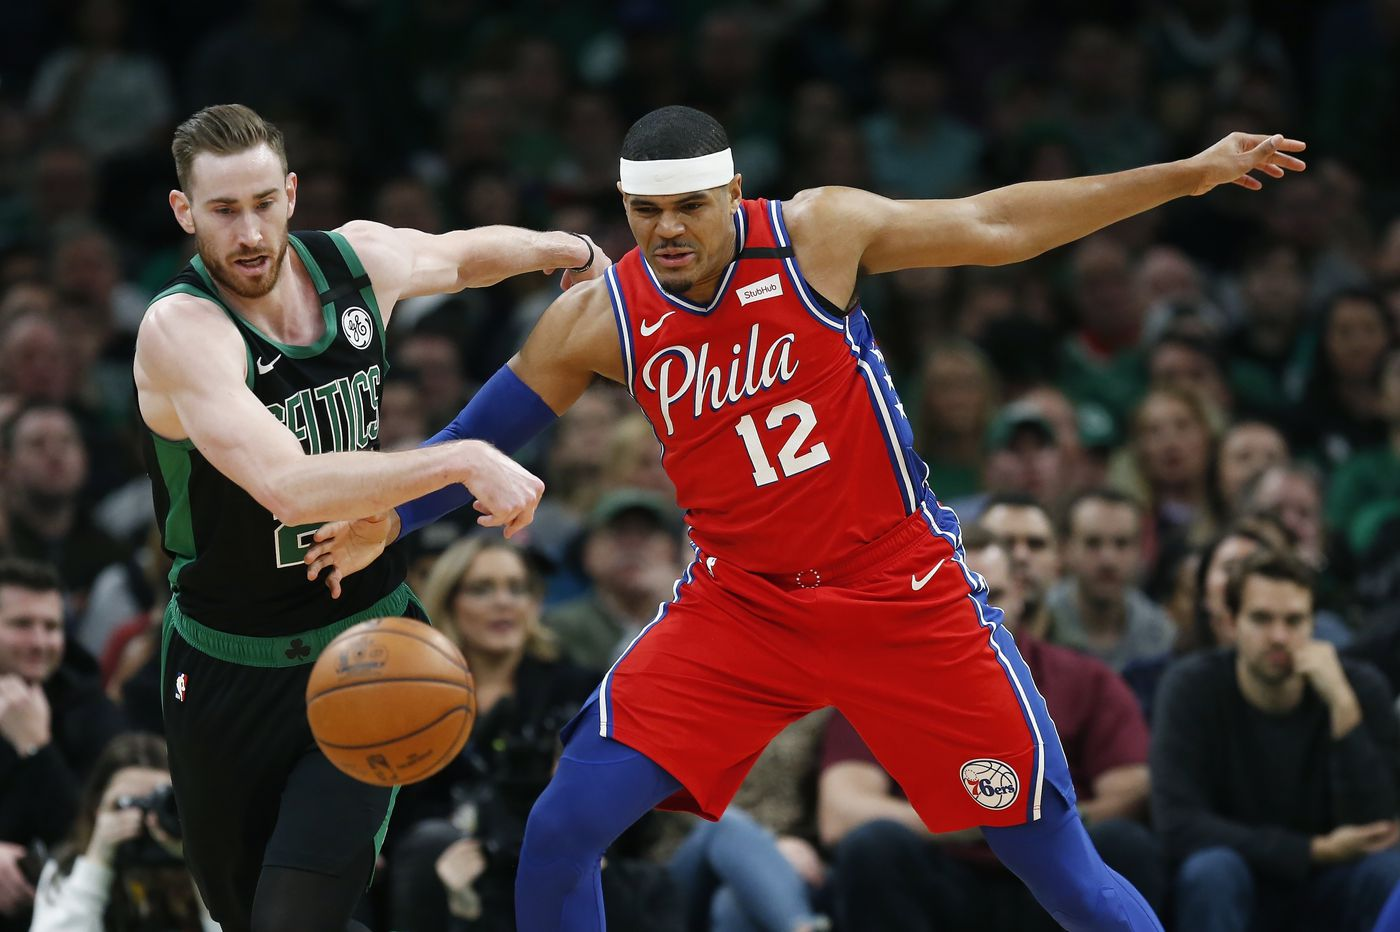 When should Sixers worry about place in standings? 'Probably about 10 games ago,' Tobias Harris says